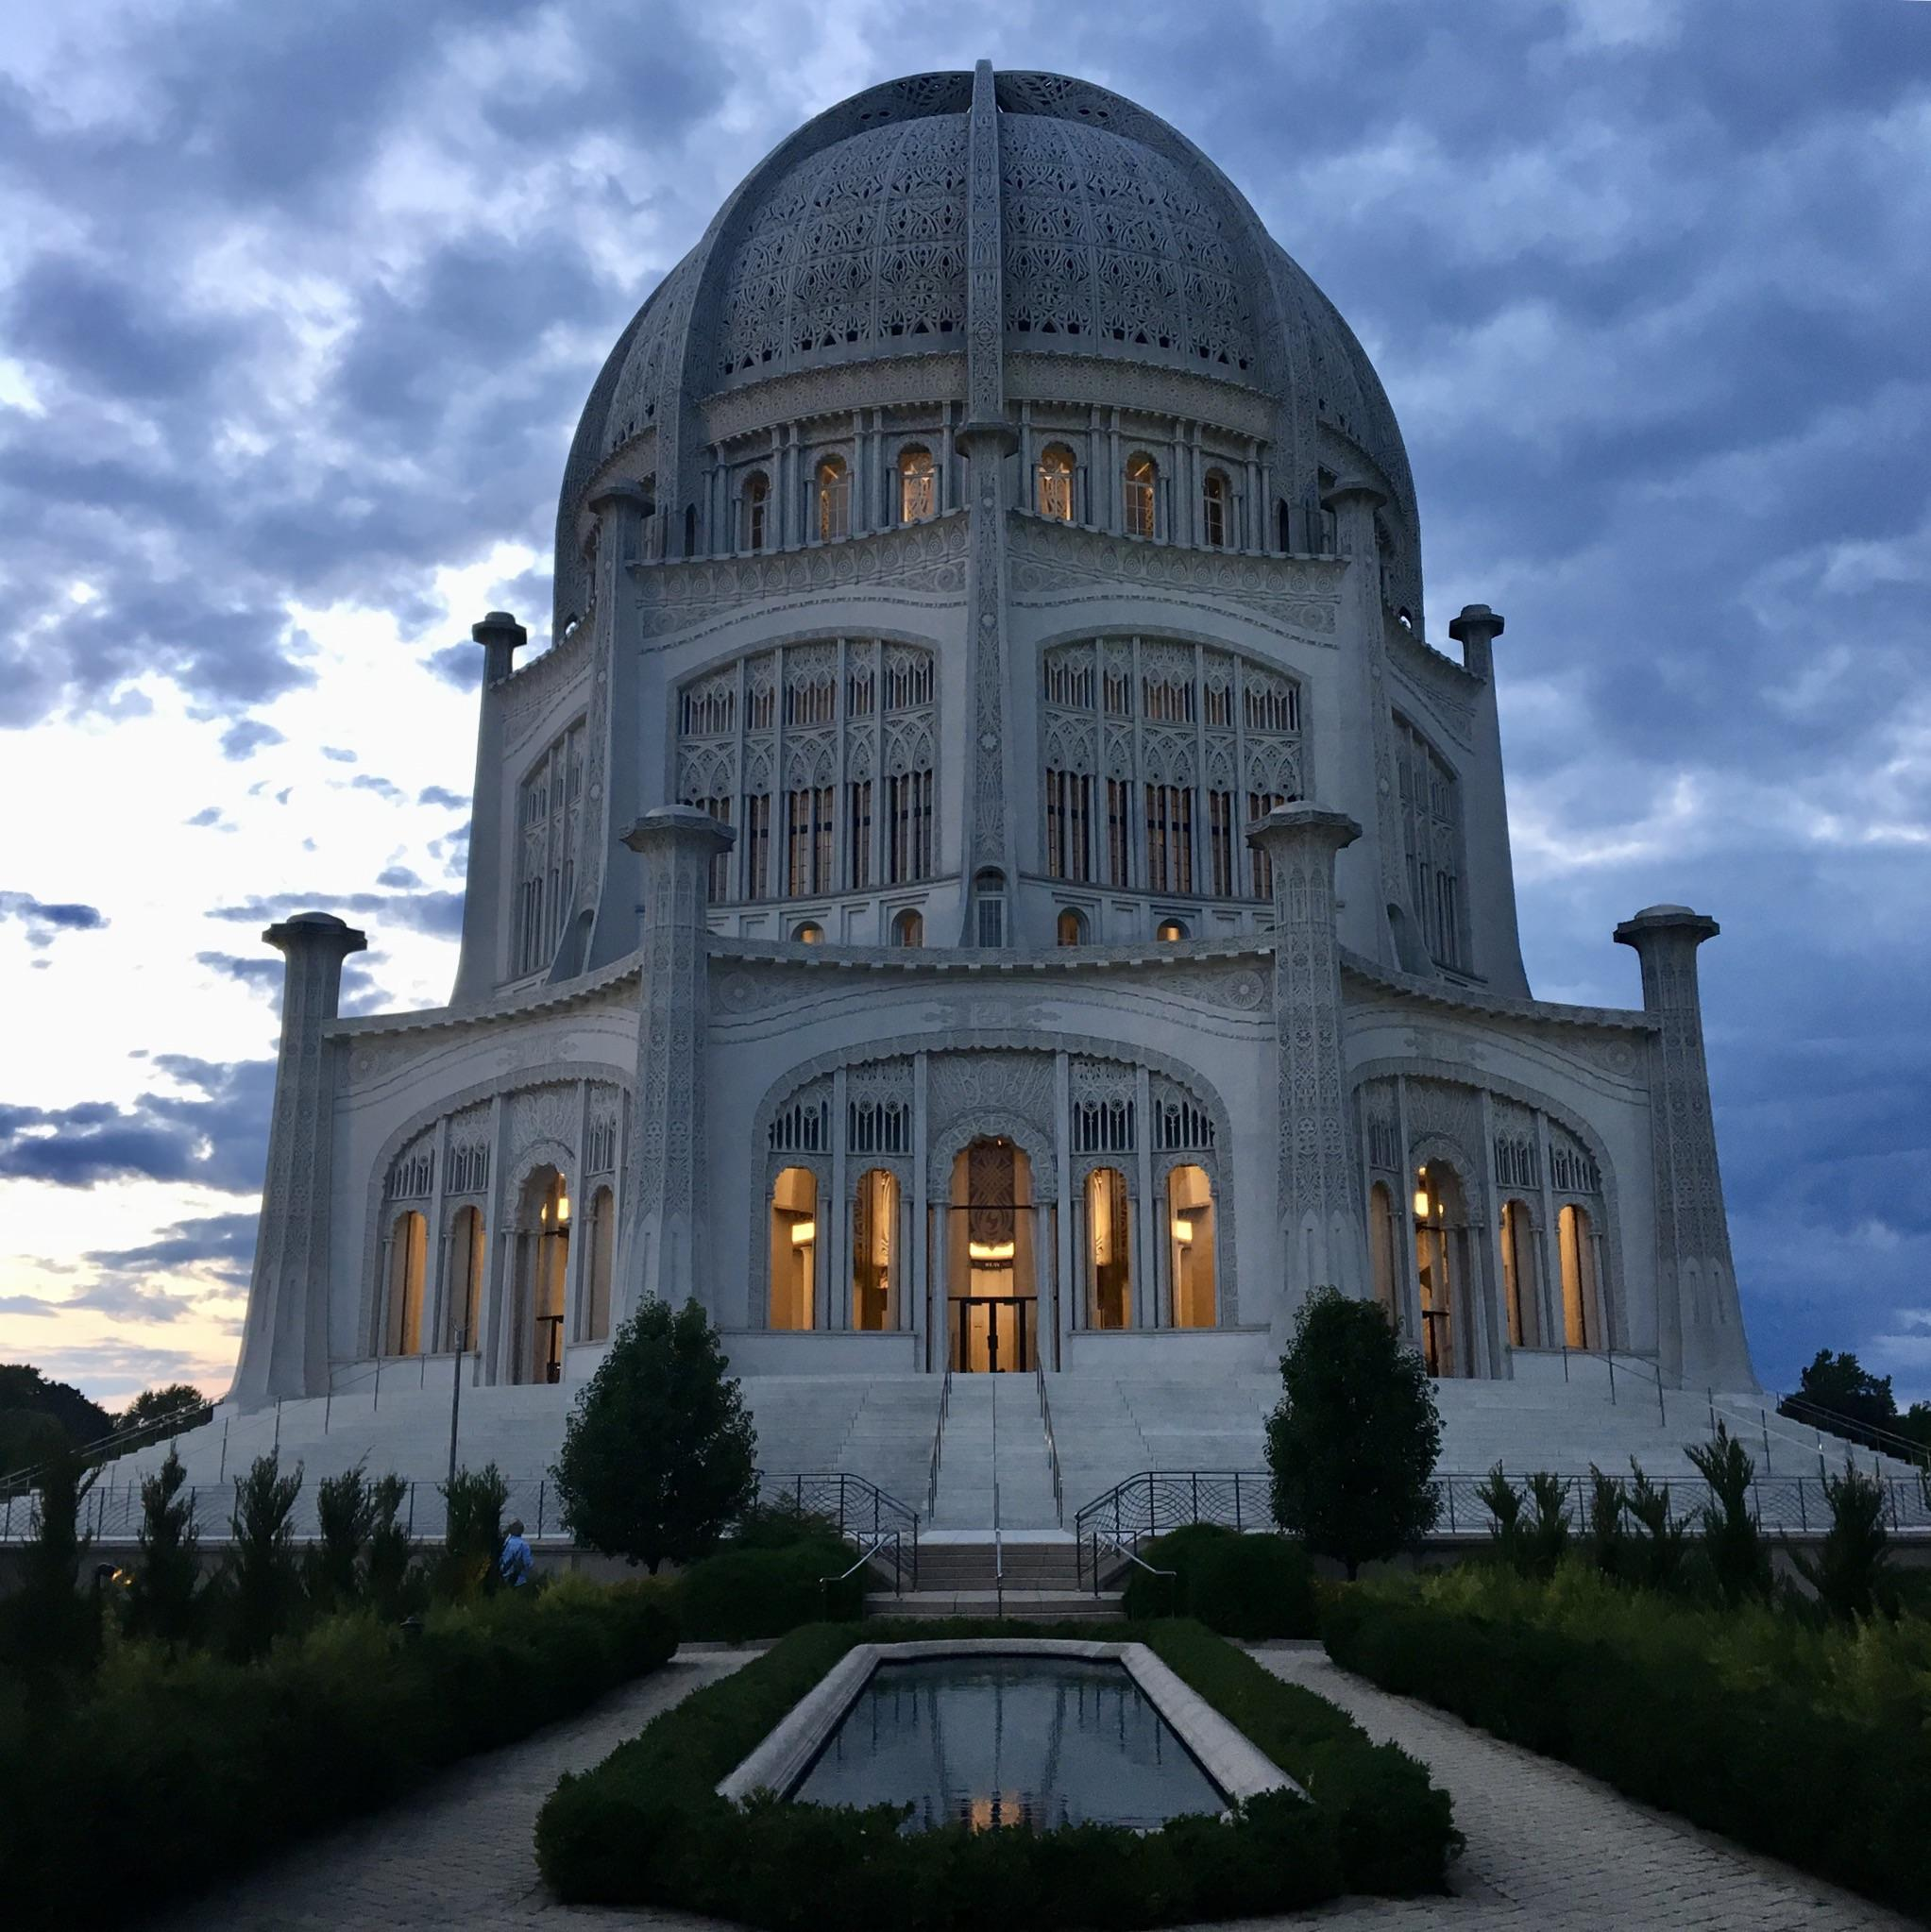 A photo I took of the Bah Temple in Wilmette Illinois If you 2045x2046